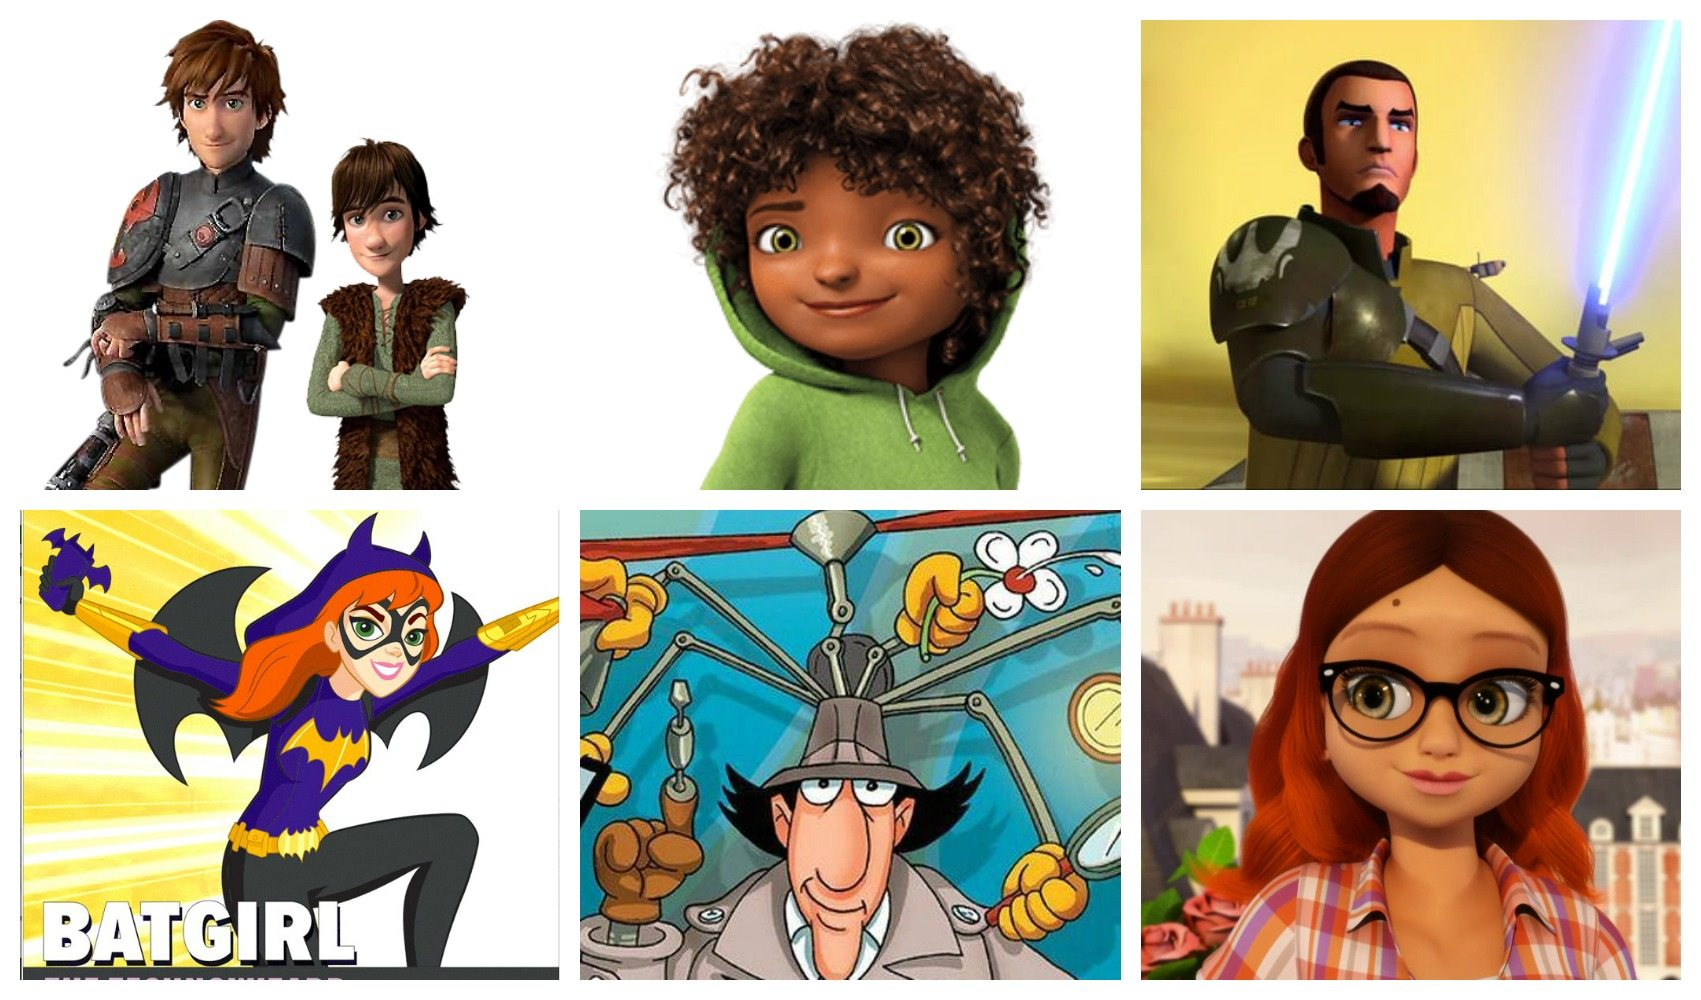 Smart, Kind Characters in Children's Media: What Gender Equality Needs